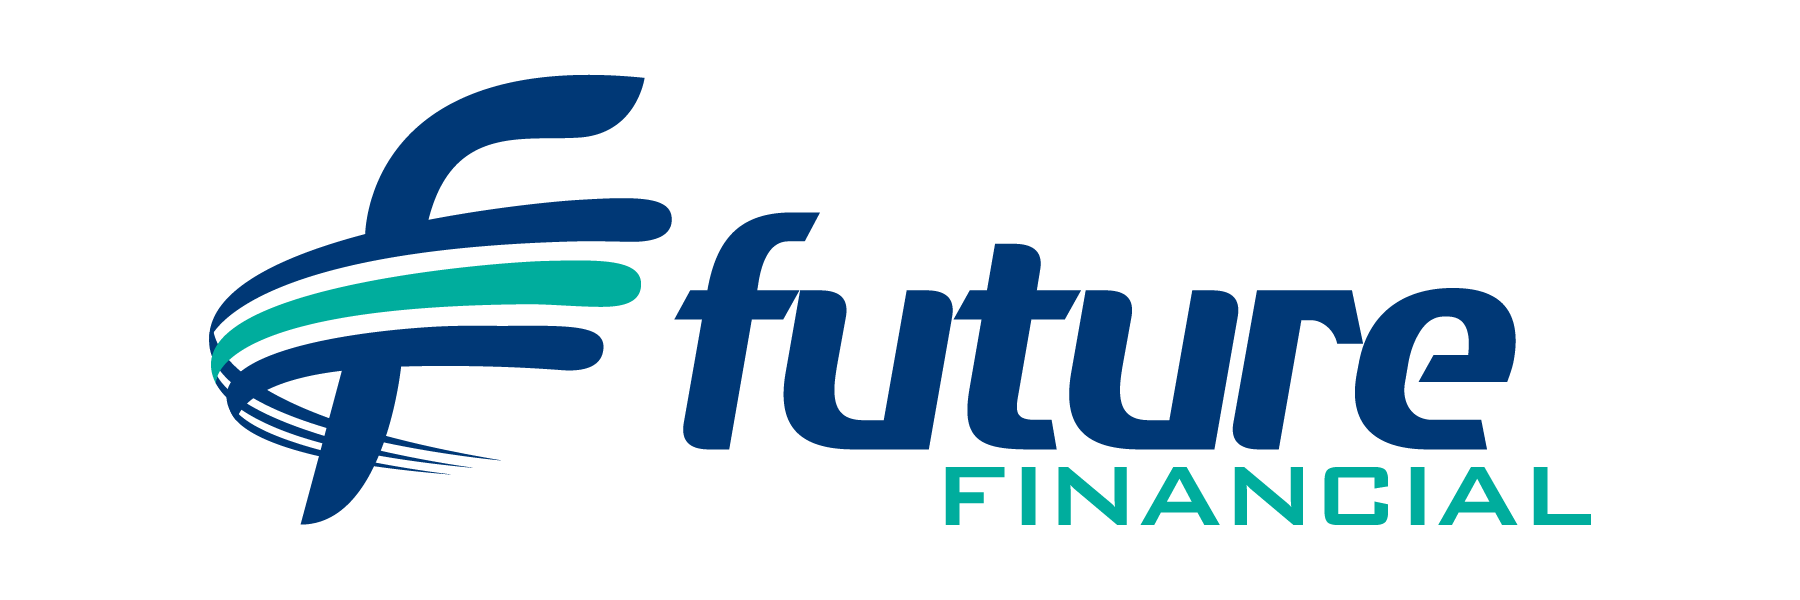 Future financial logo